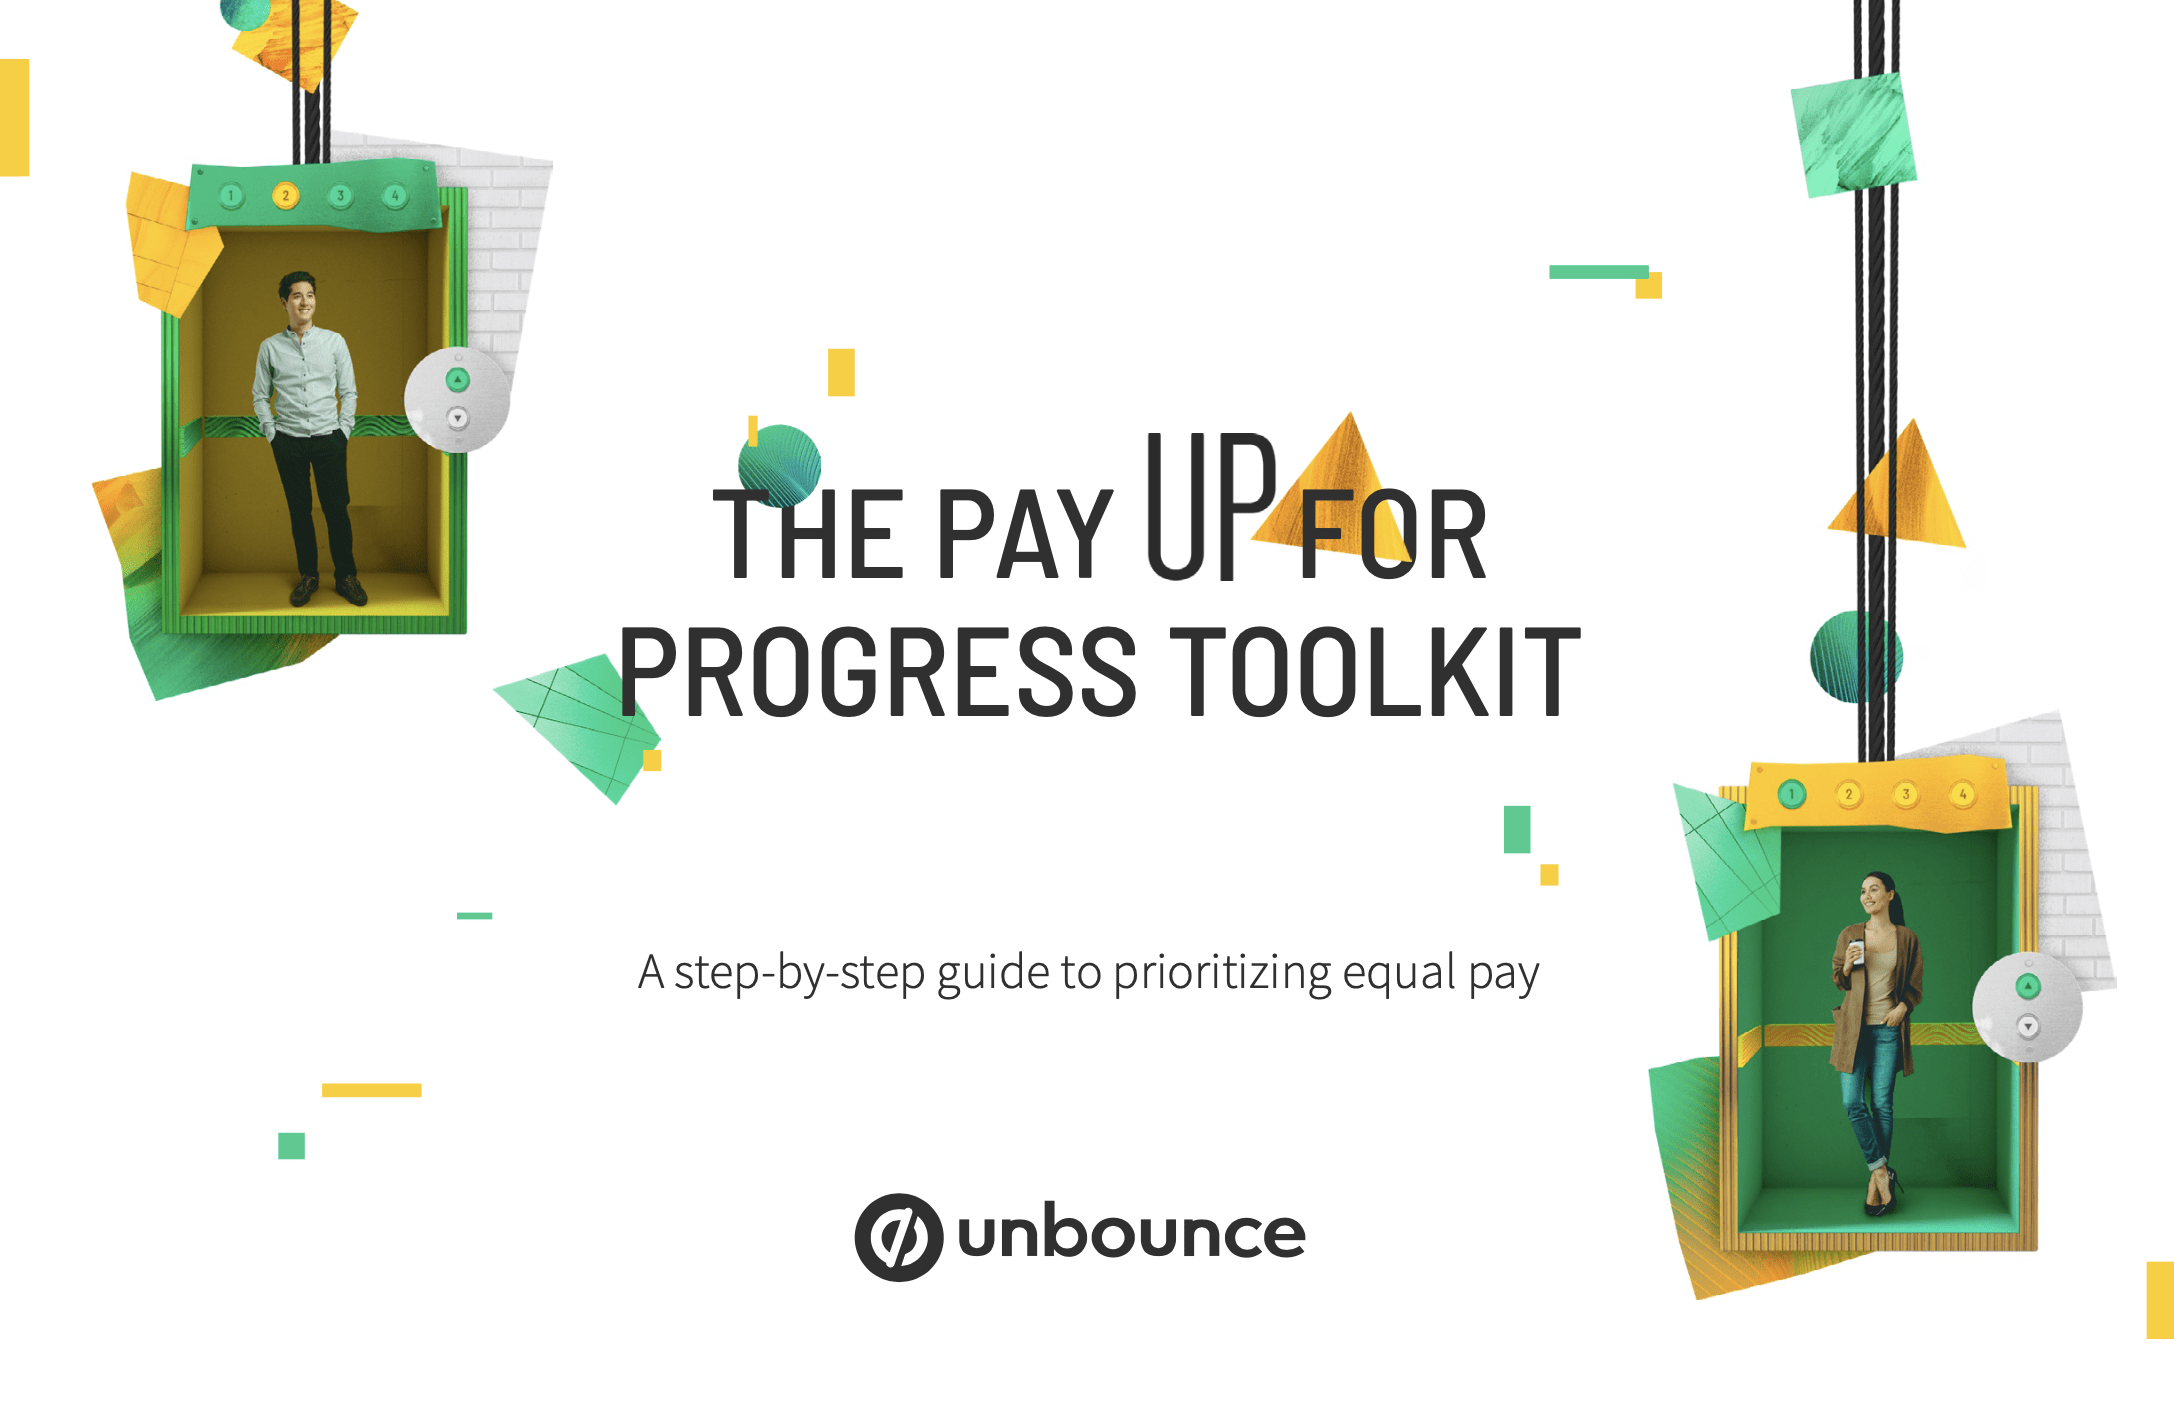 The Pay Up for Progress Toolkit